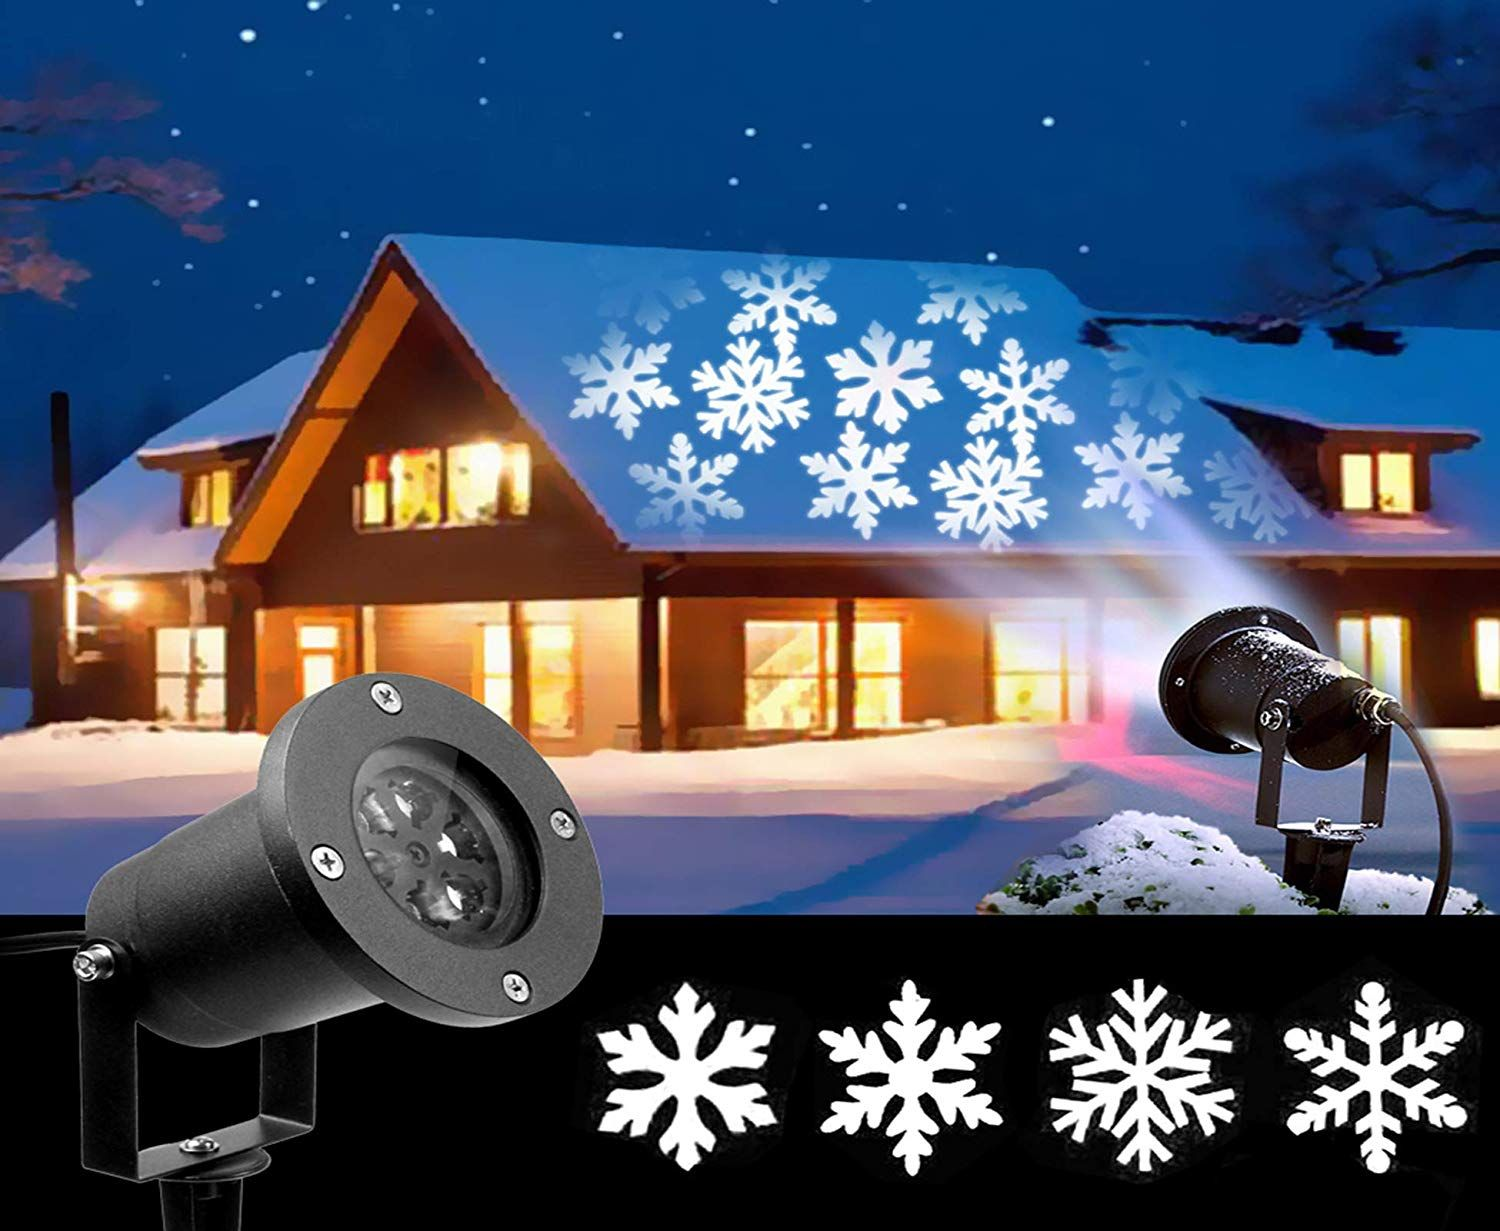 2018 Newest Christmas Lights White Moving Snowflake Light Projector Holiday Outdoor Decorations W Laser Christmas Lights Christmas Lights New Christmas Lights